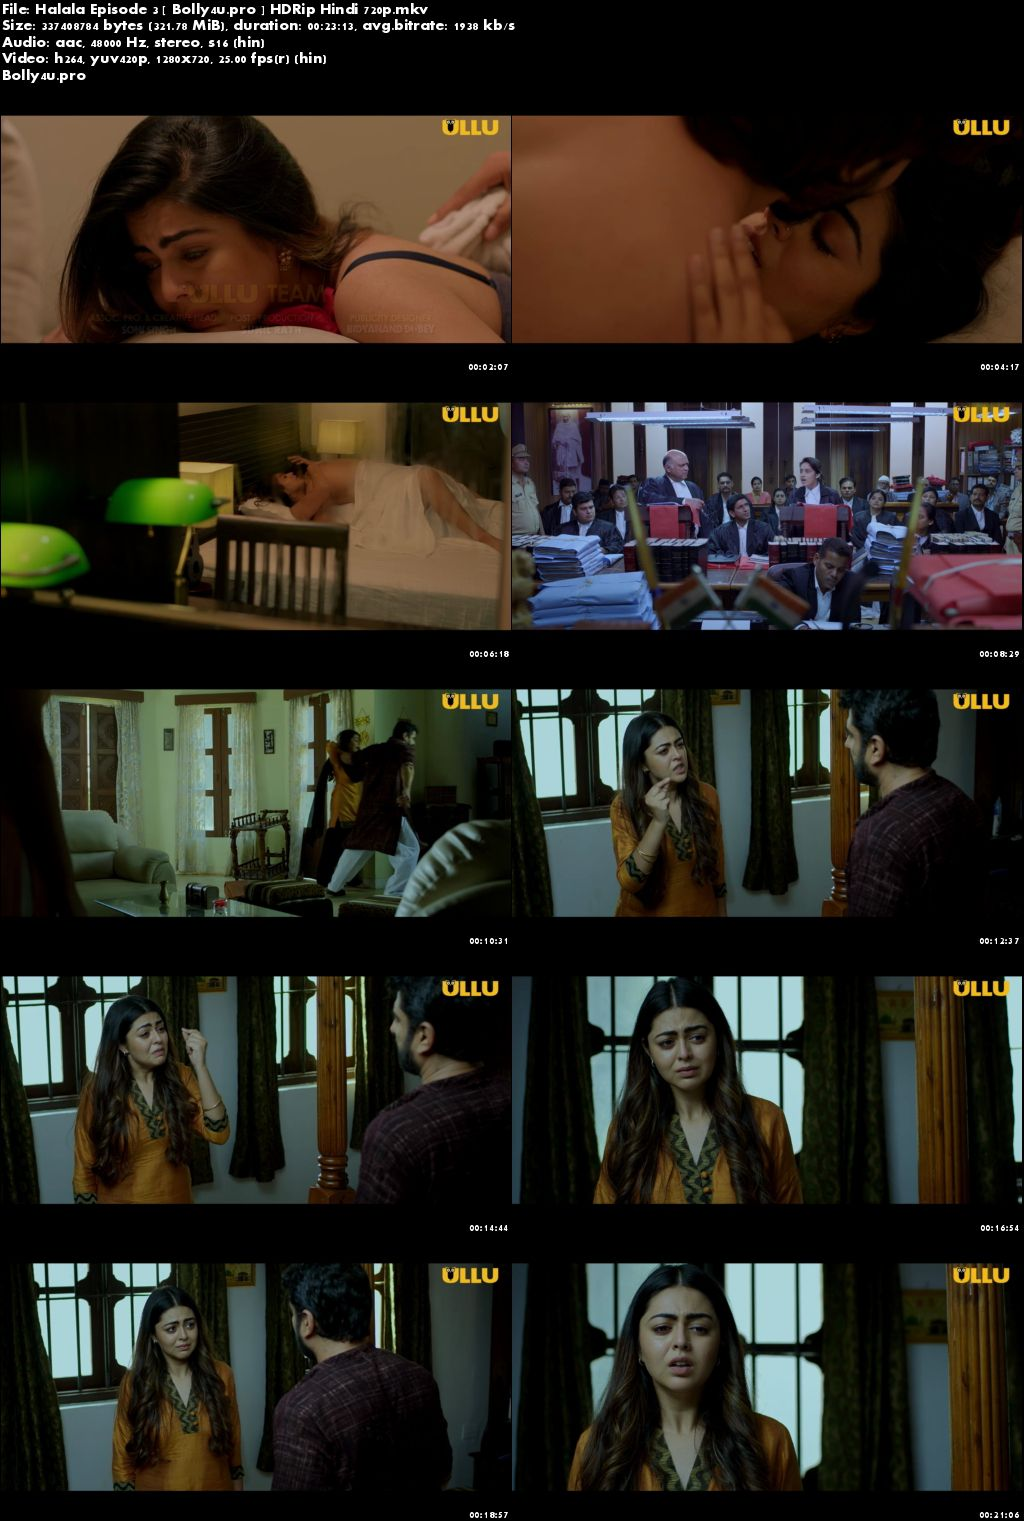 Halala 2019 HDRip 1.3GB Hindi Season 02 Complete 720p Download